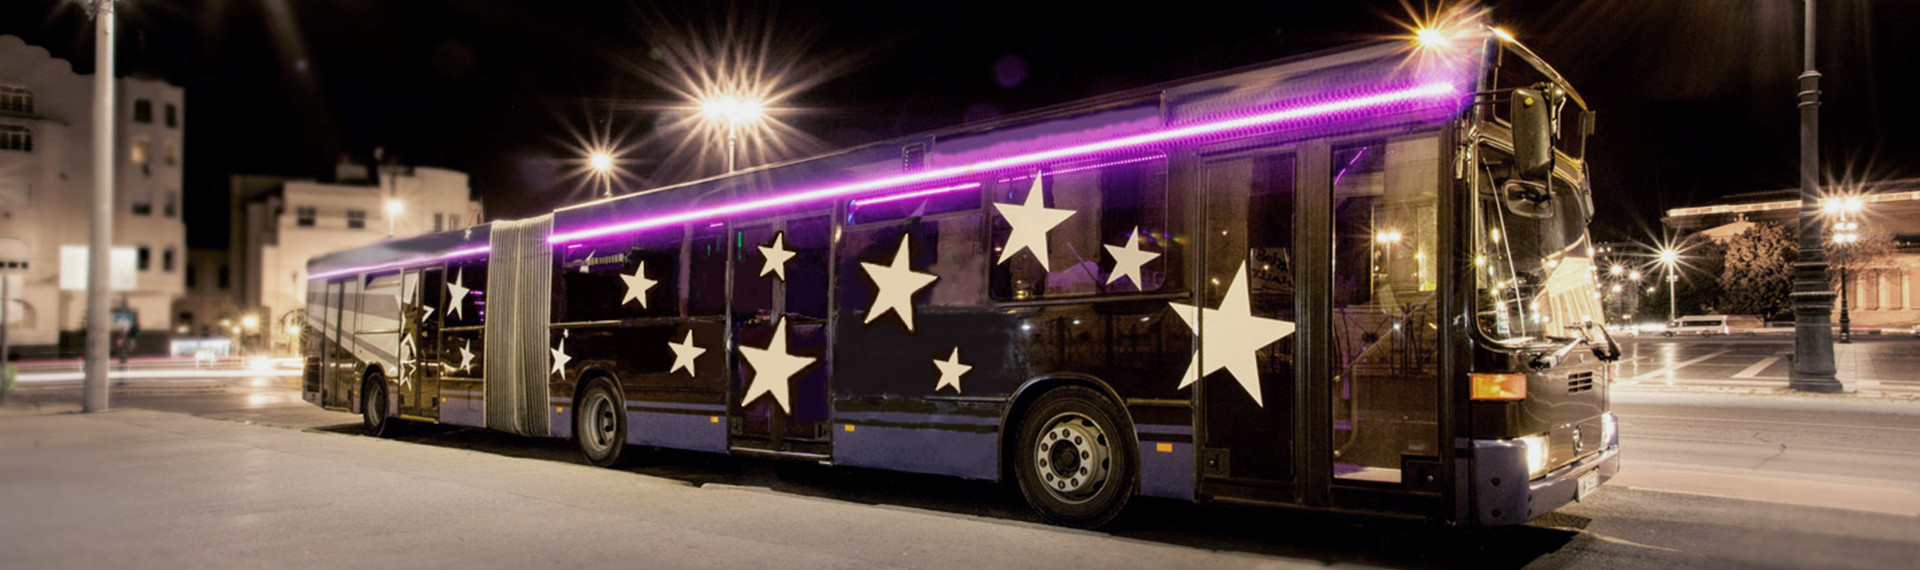 Airport Transfer Party Bus Budapest